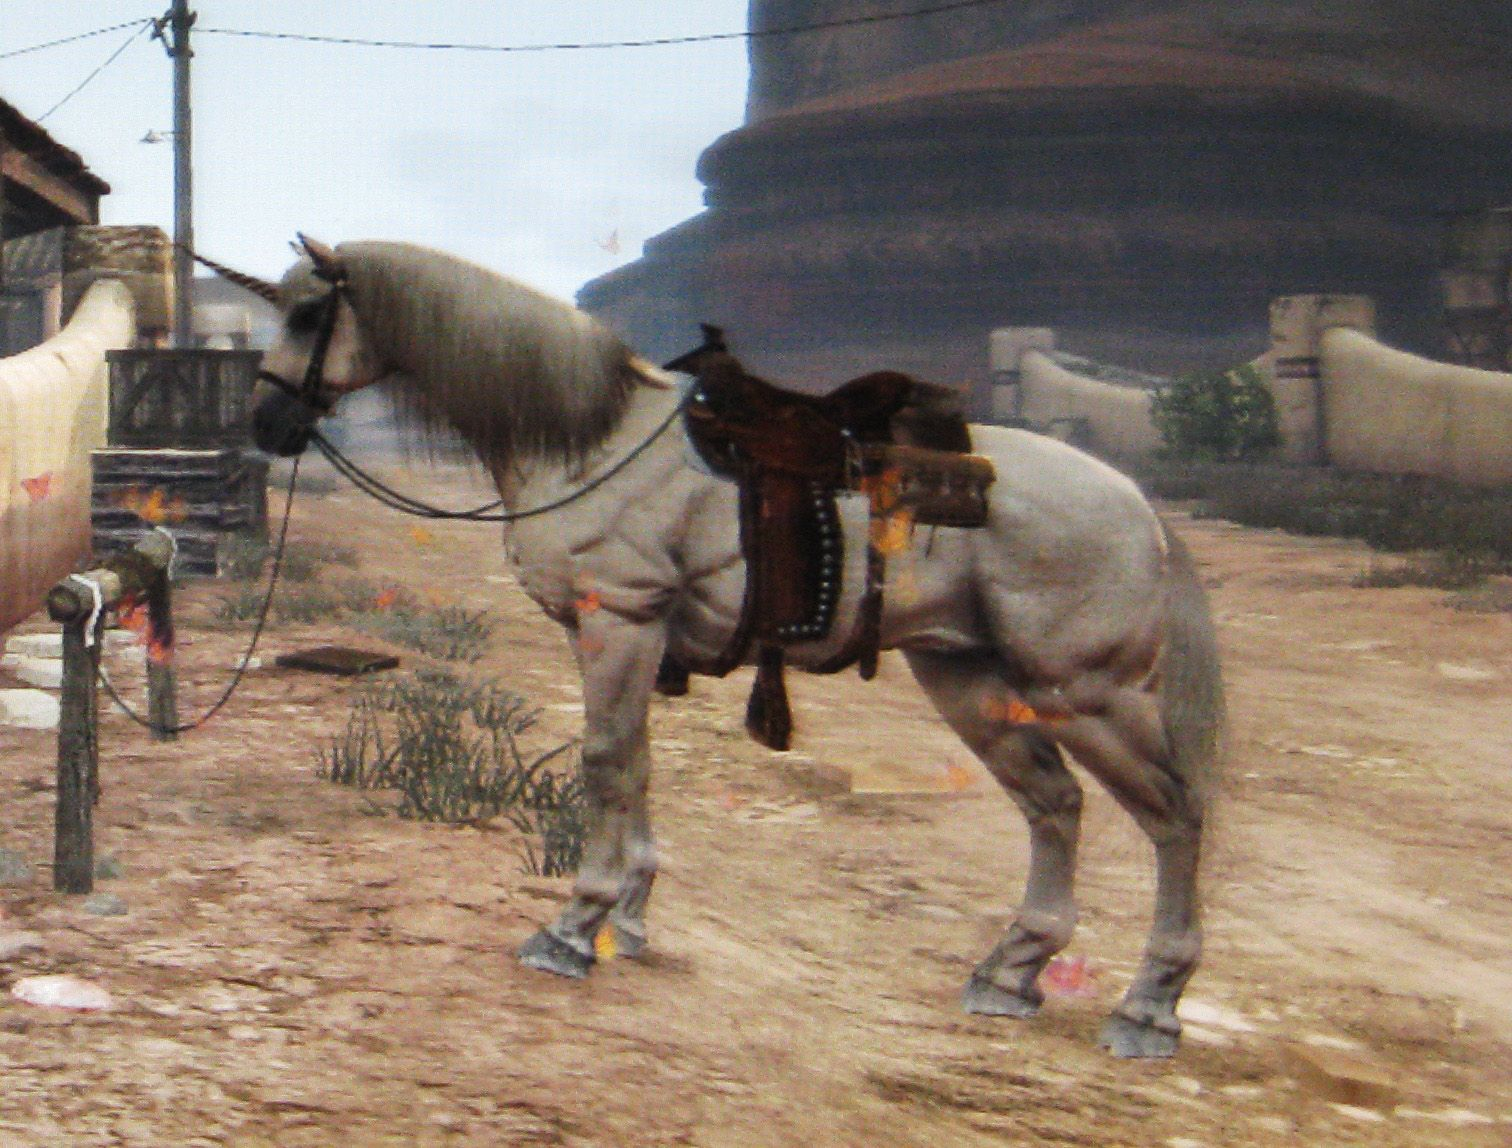 Unicorn With Images Red Dead Redemption Horses Red Dead